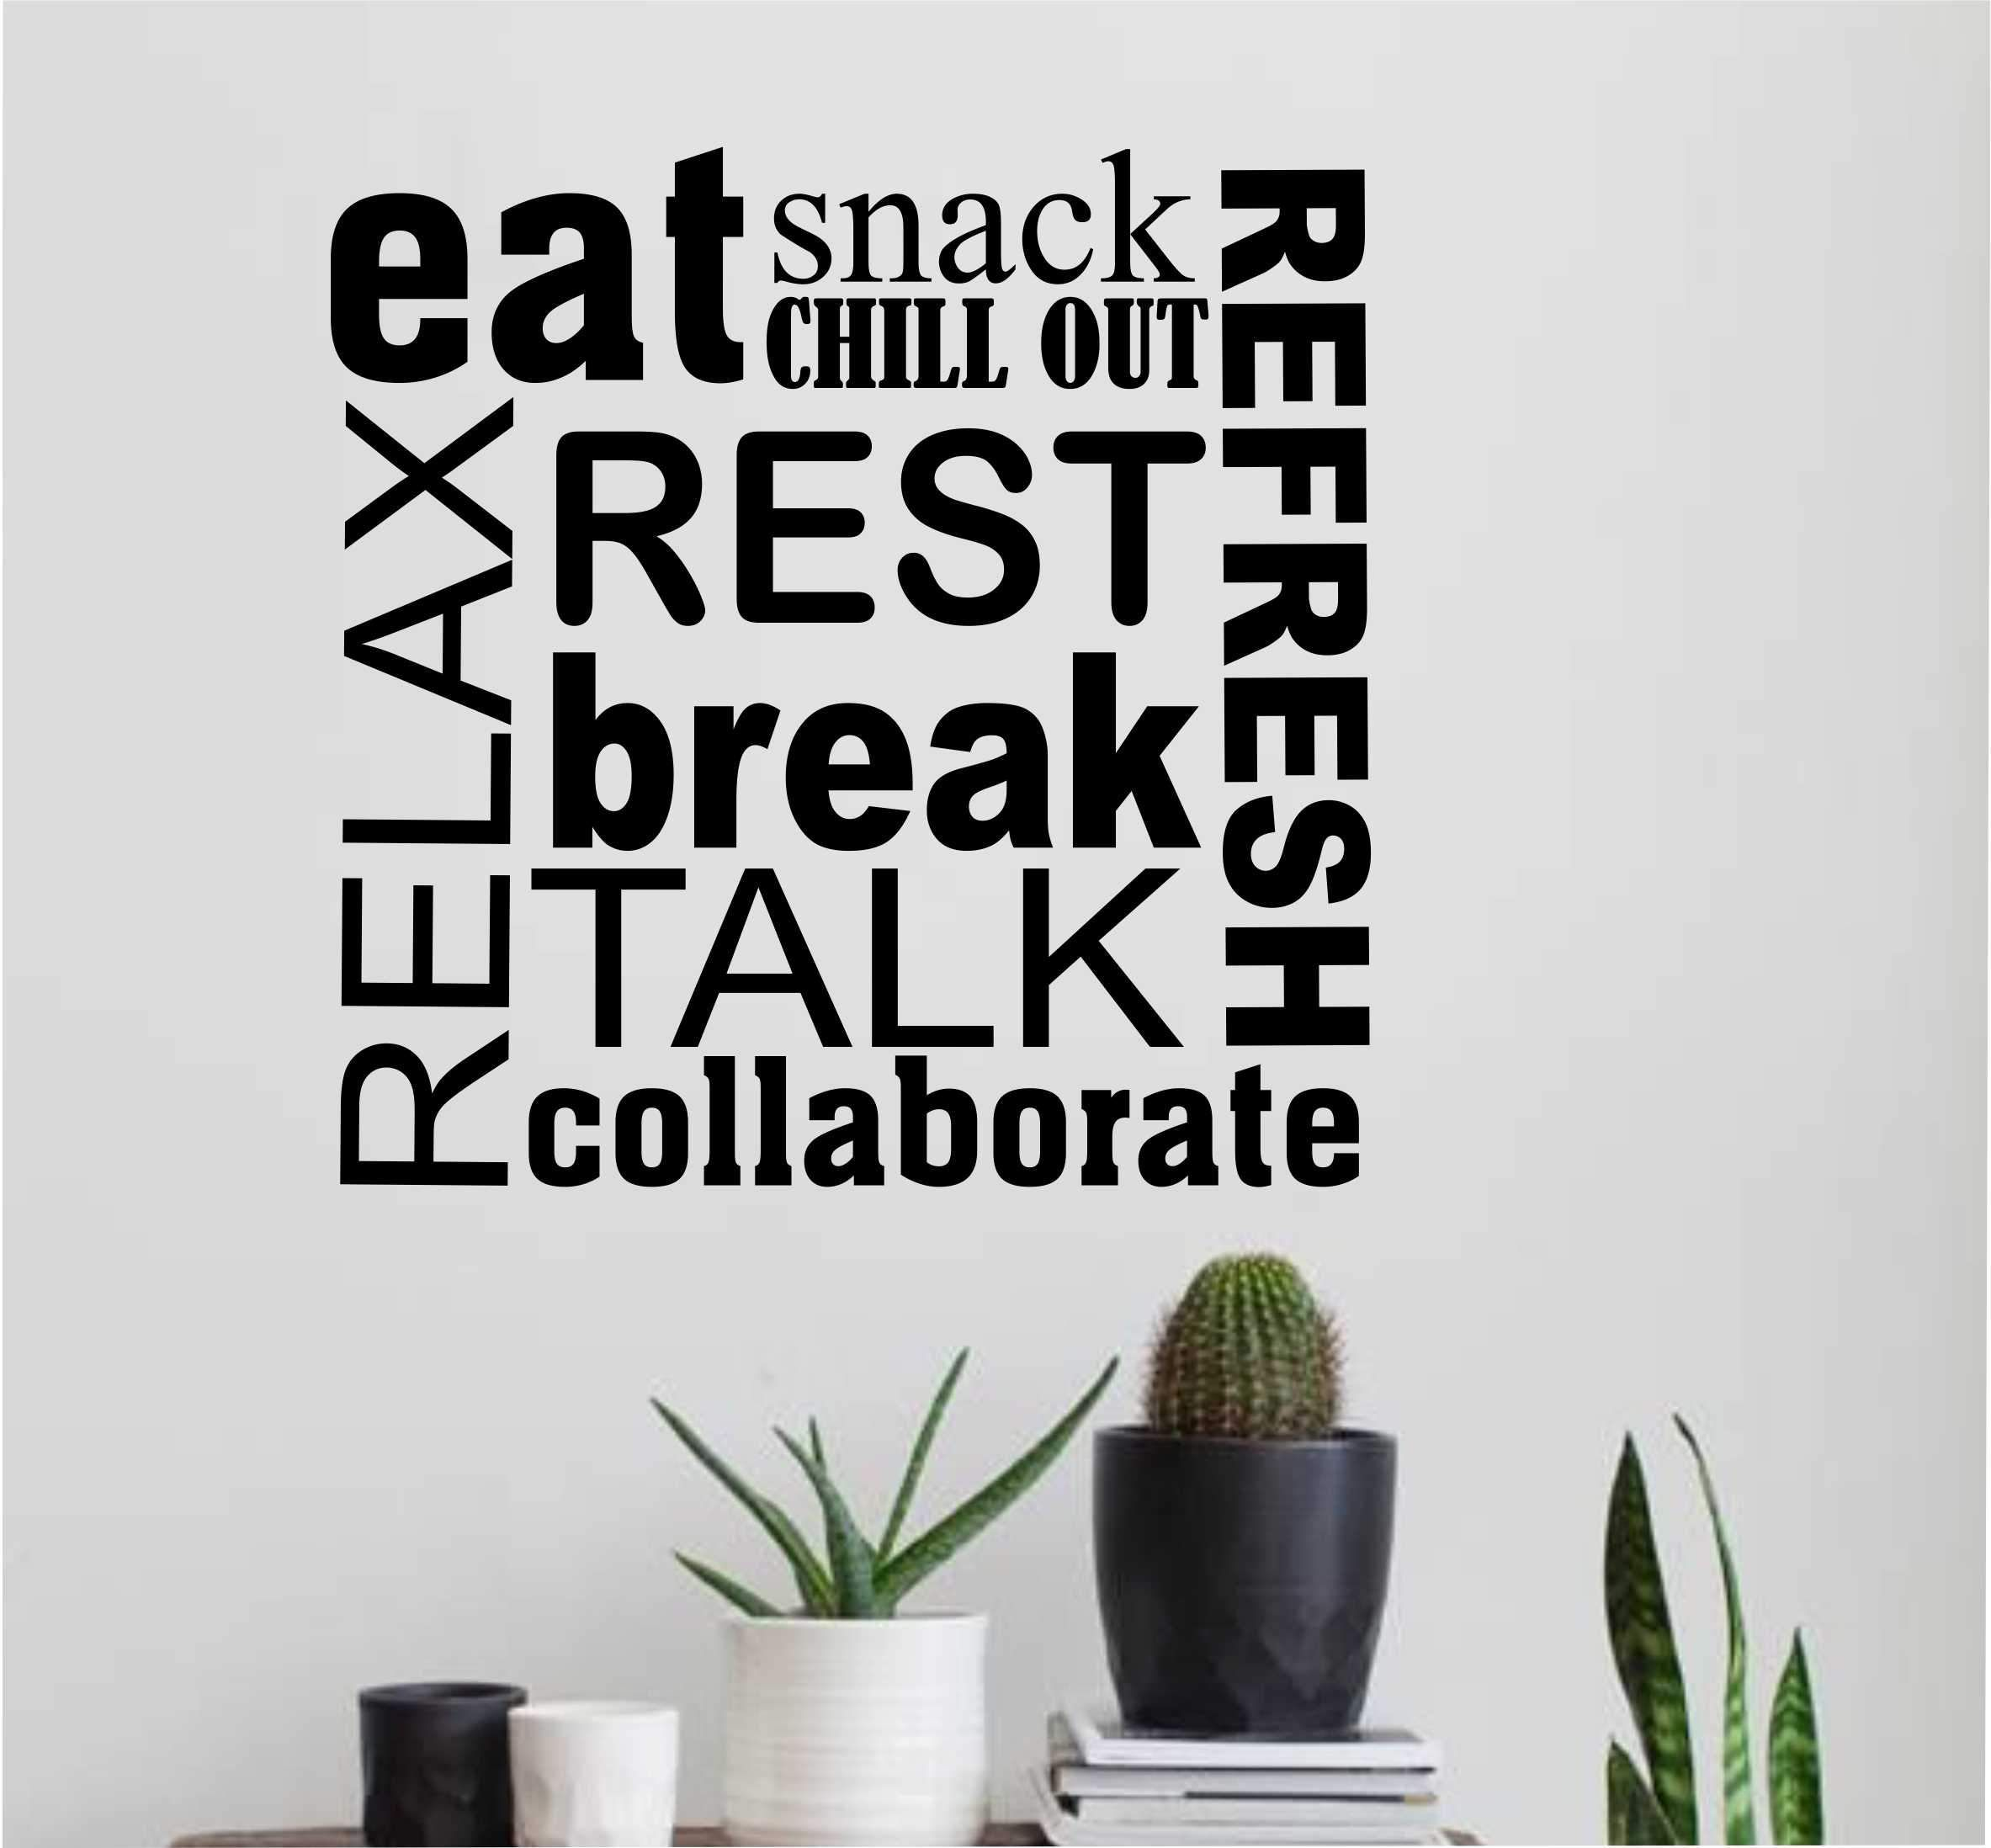 Break Room Word Collage | Wall Lettering | Vinyl Office Decals images